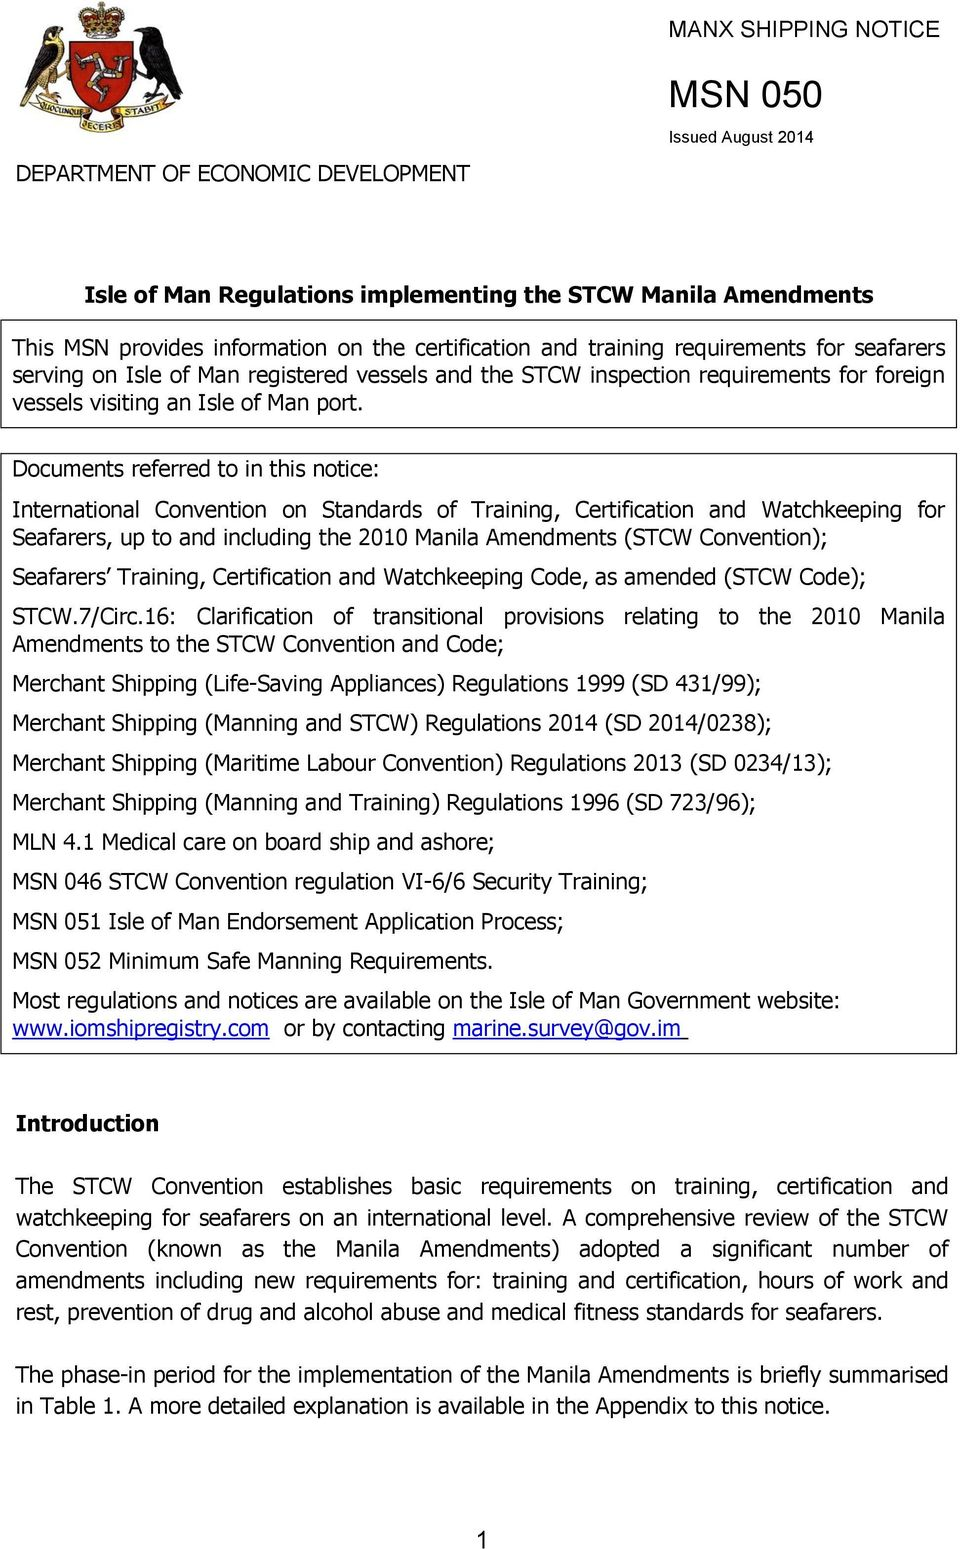 Documents referred to in this notice: International Convention on Standards of Training, Certification and Watchkeeping for Seafarers, up to and including the 2010 Manila Amendments (STCW